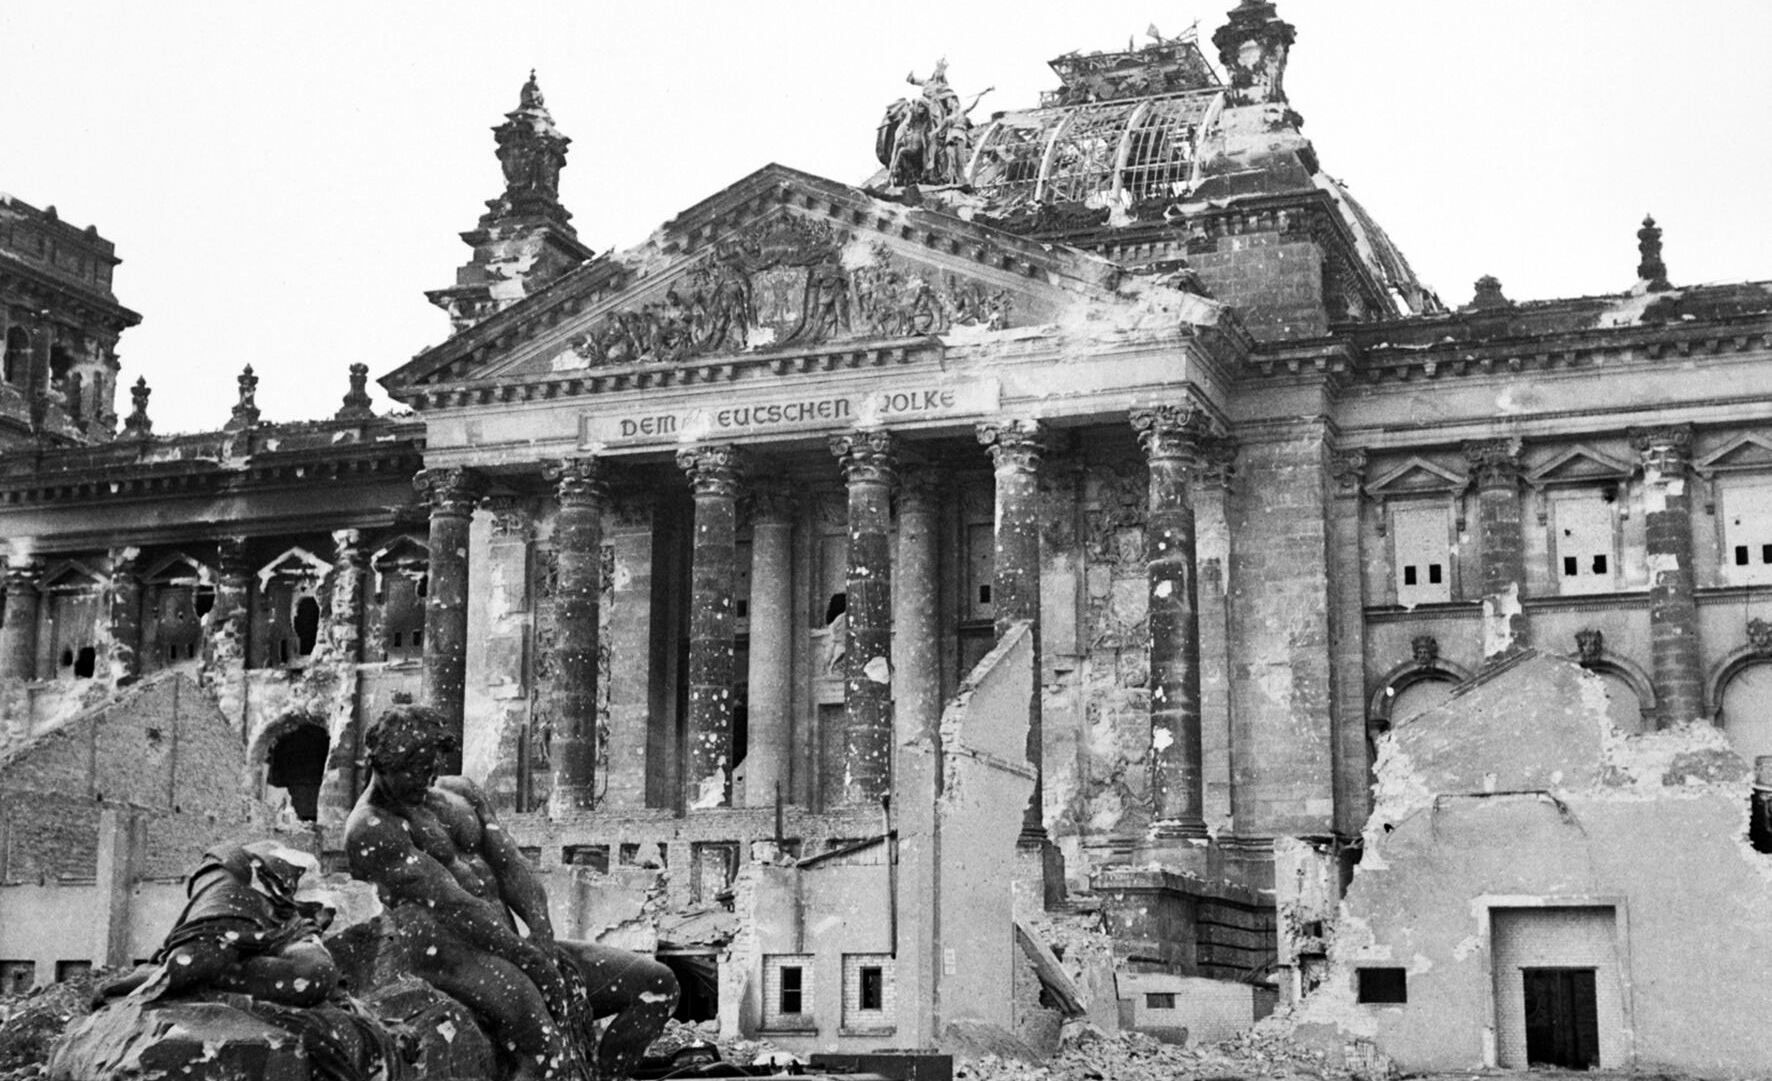 The Reichstag after the bombing of Berlin, June 1945. Wikipedia.